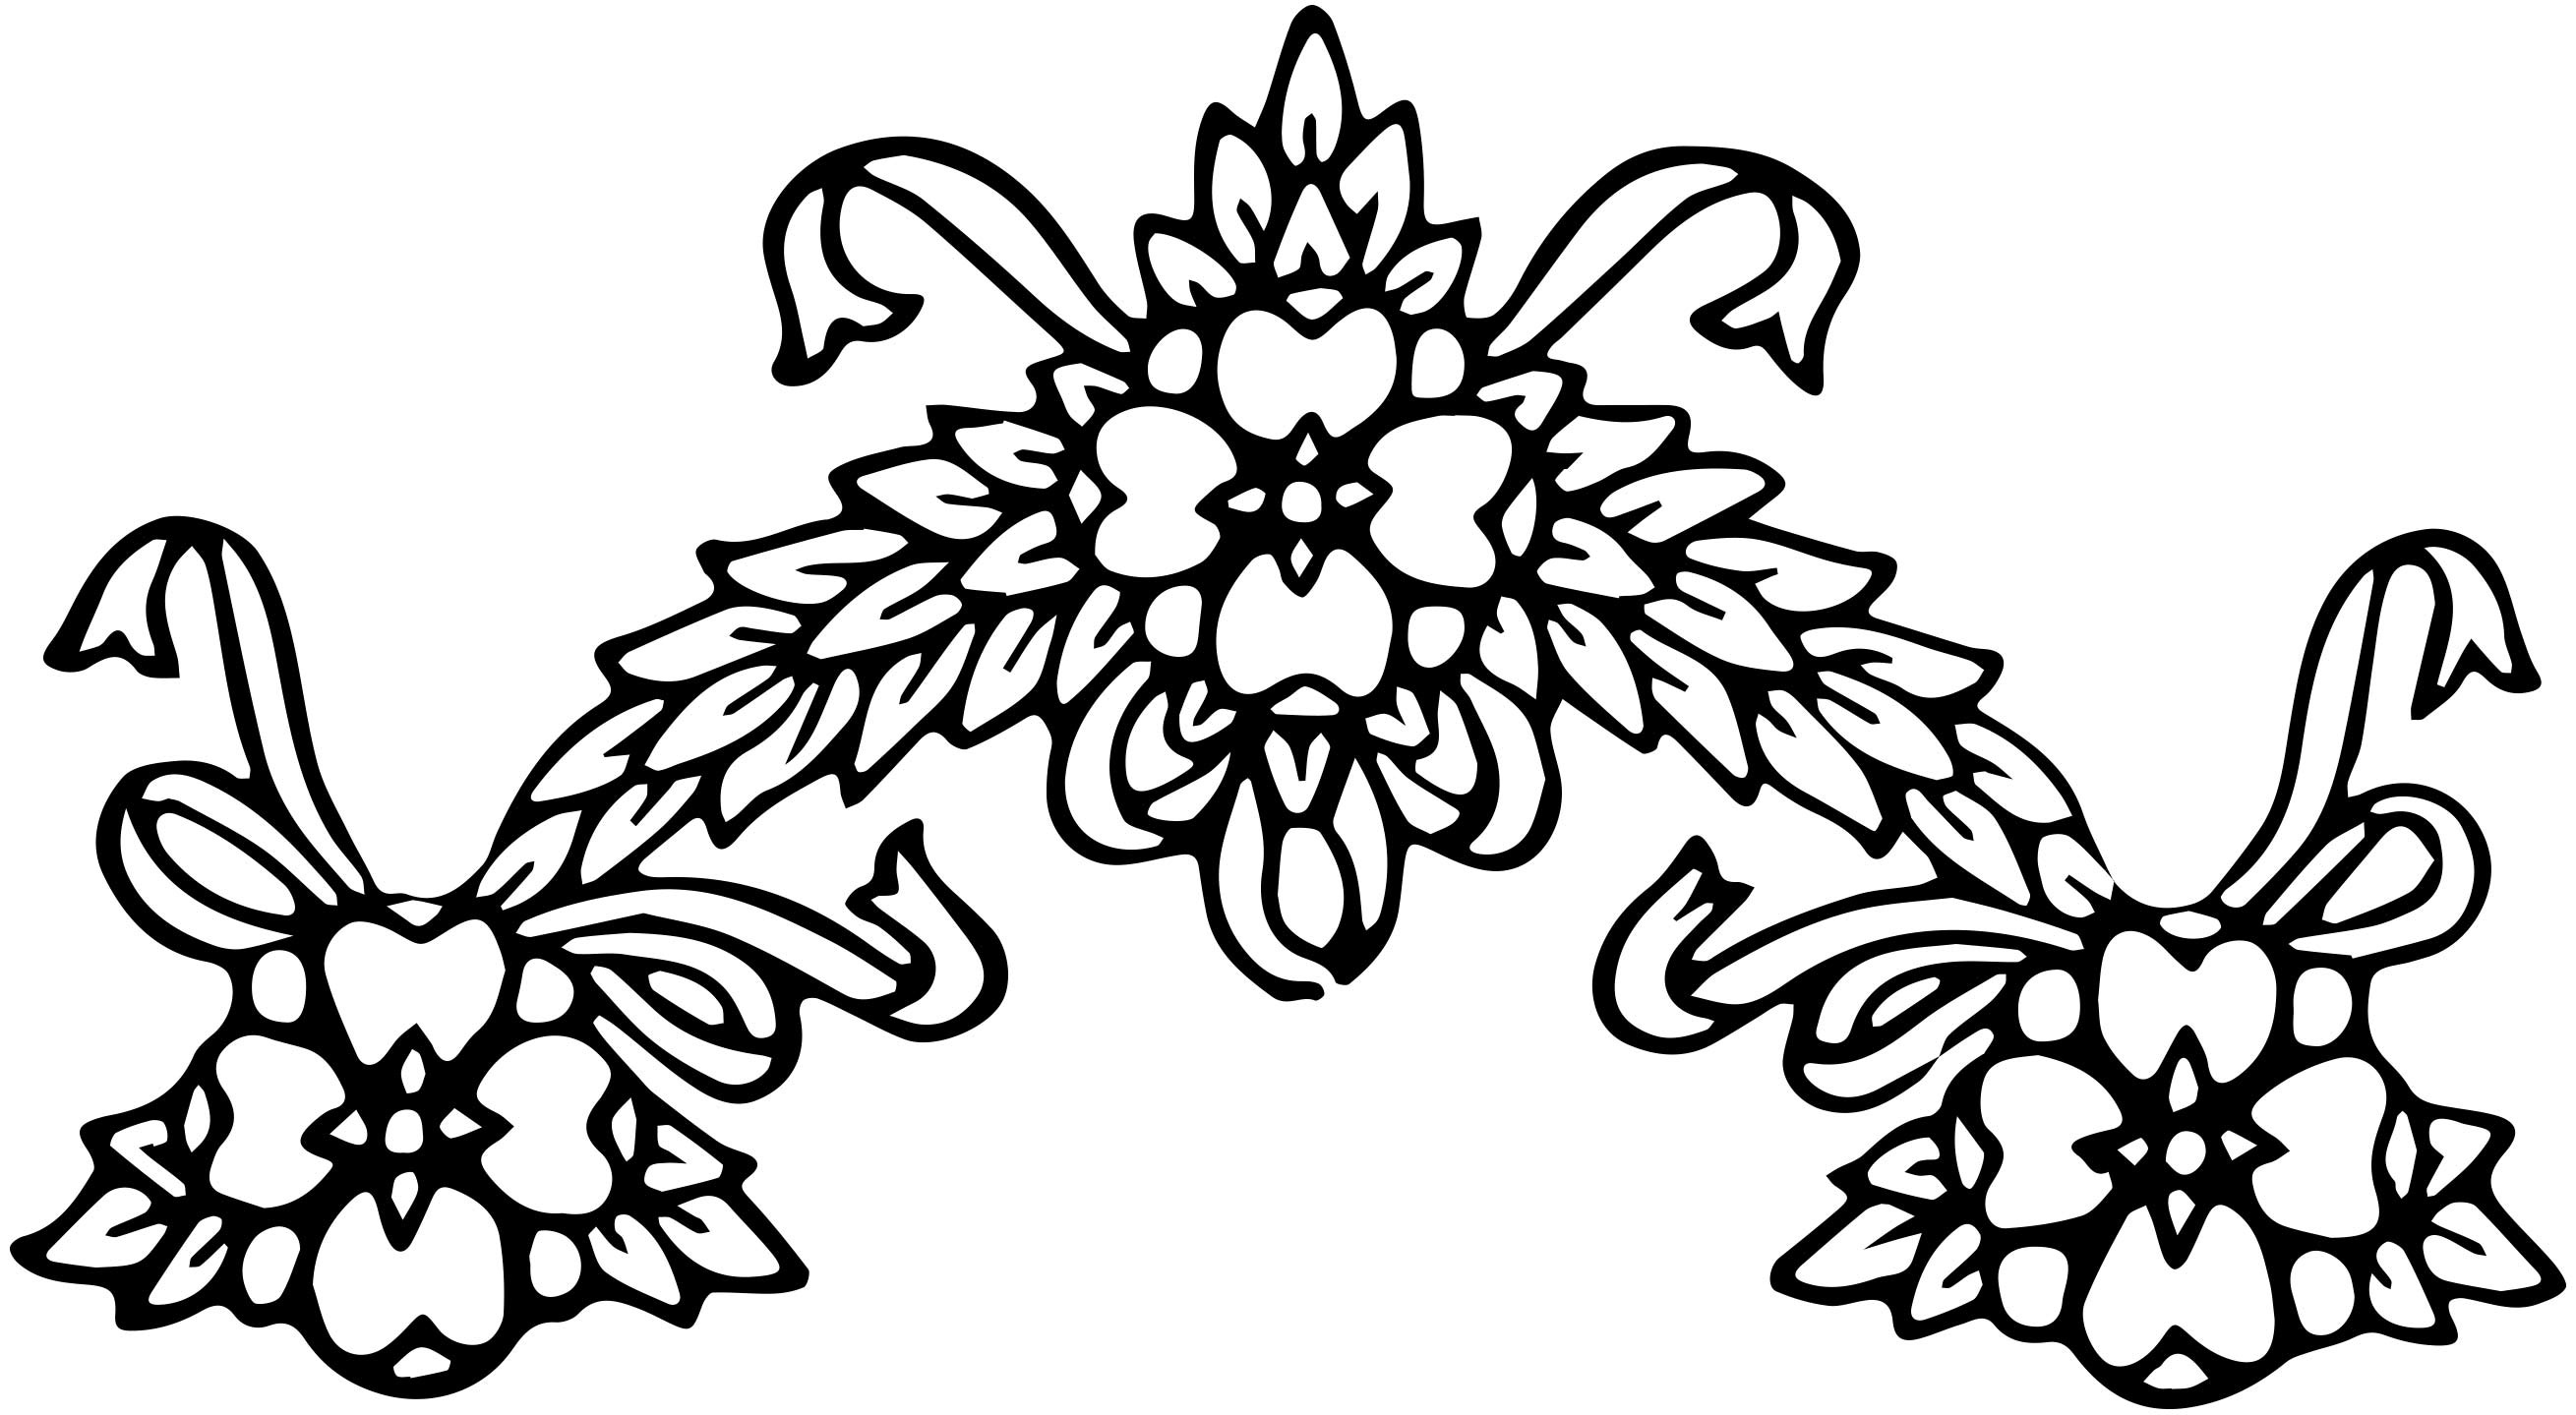 Floral clipart black and white Flower Clipart Black and Clip